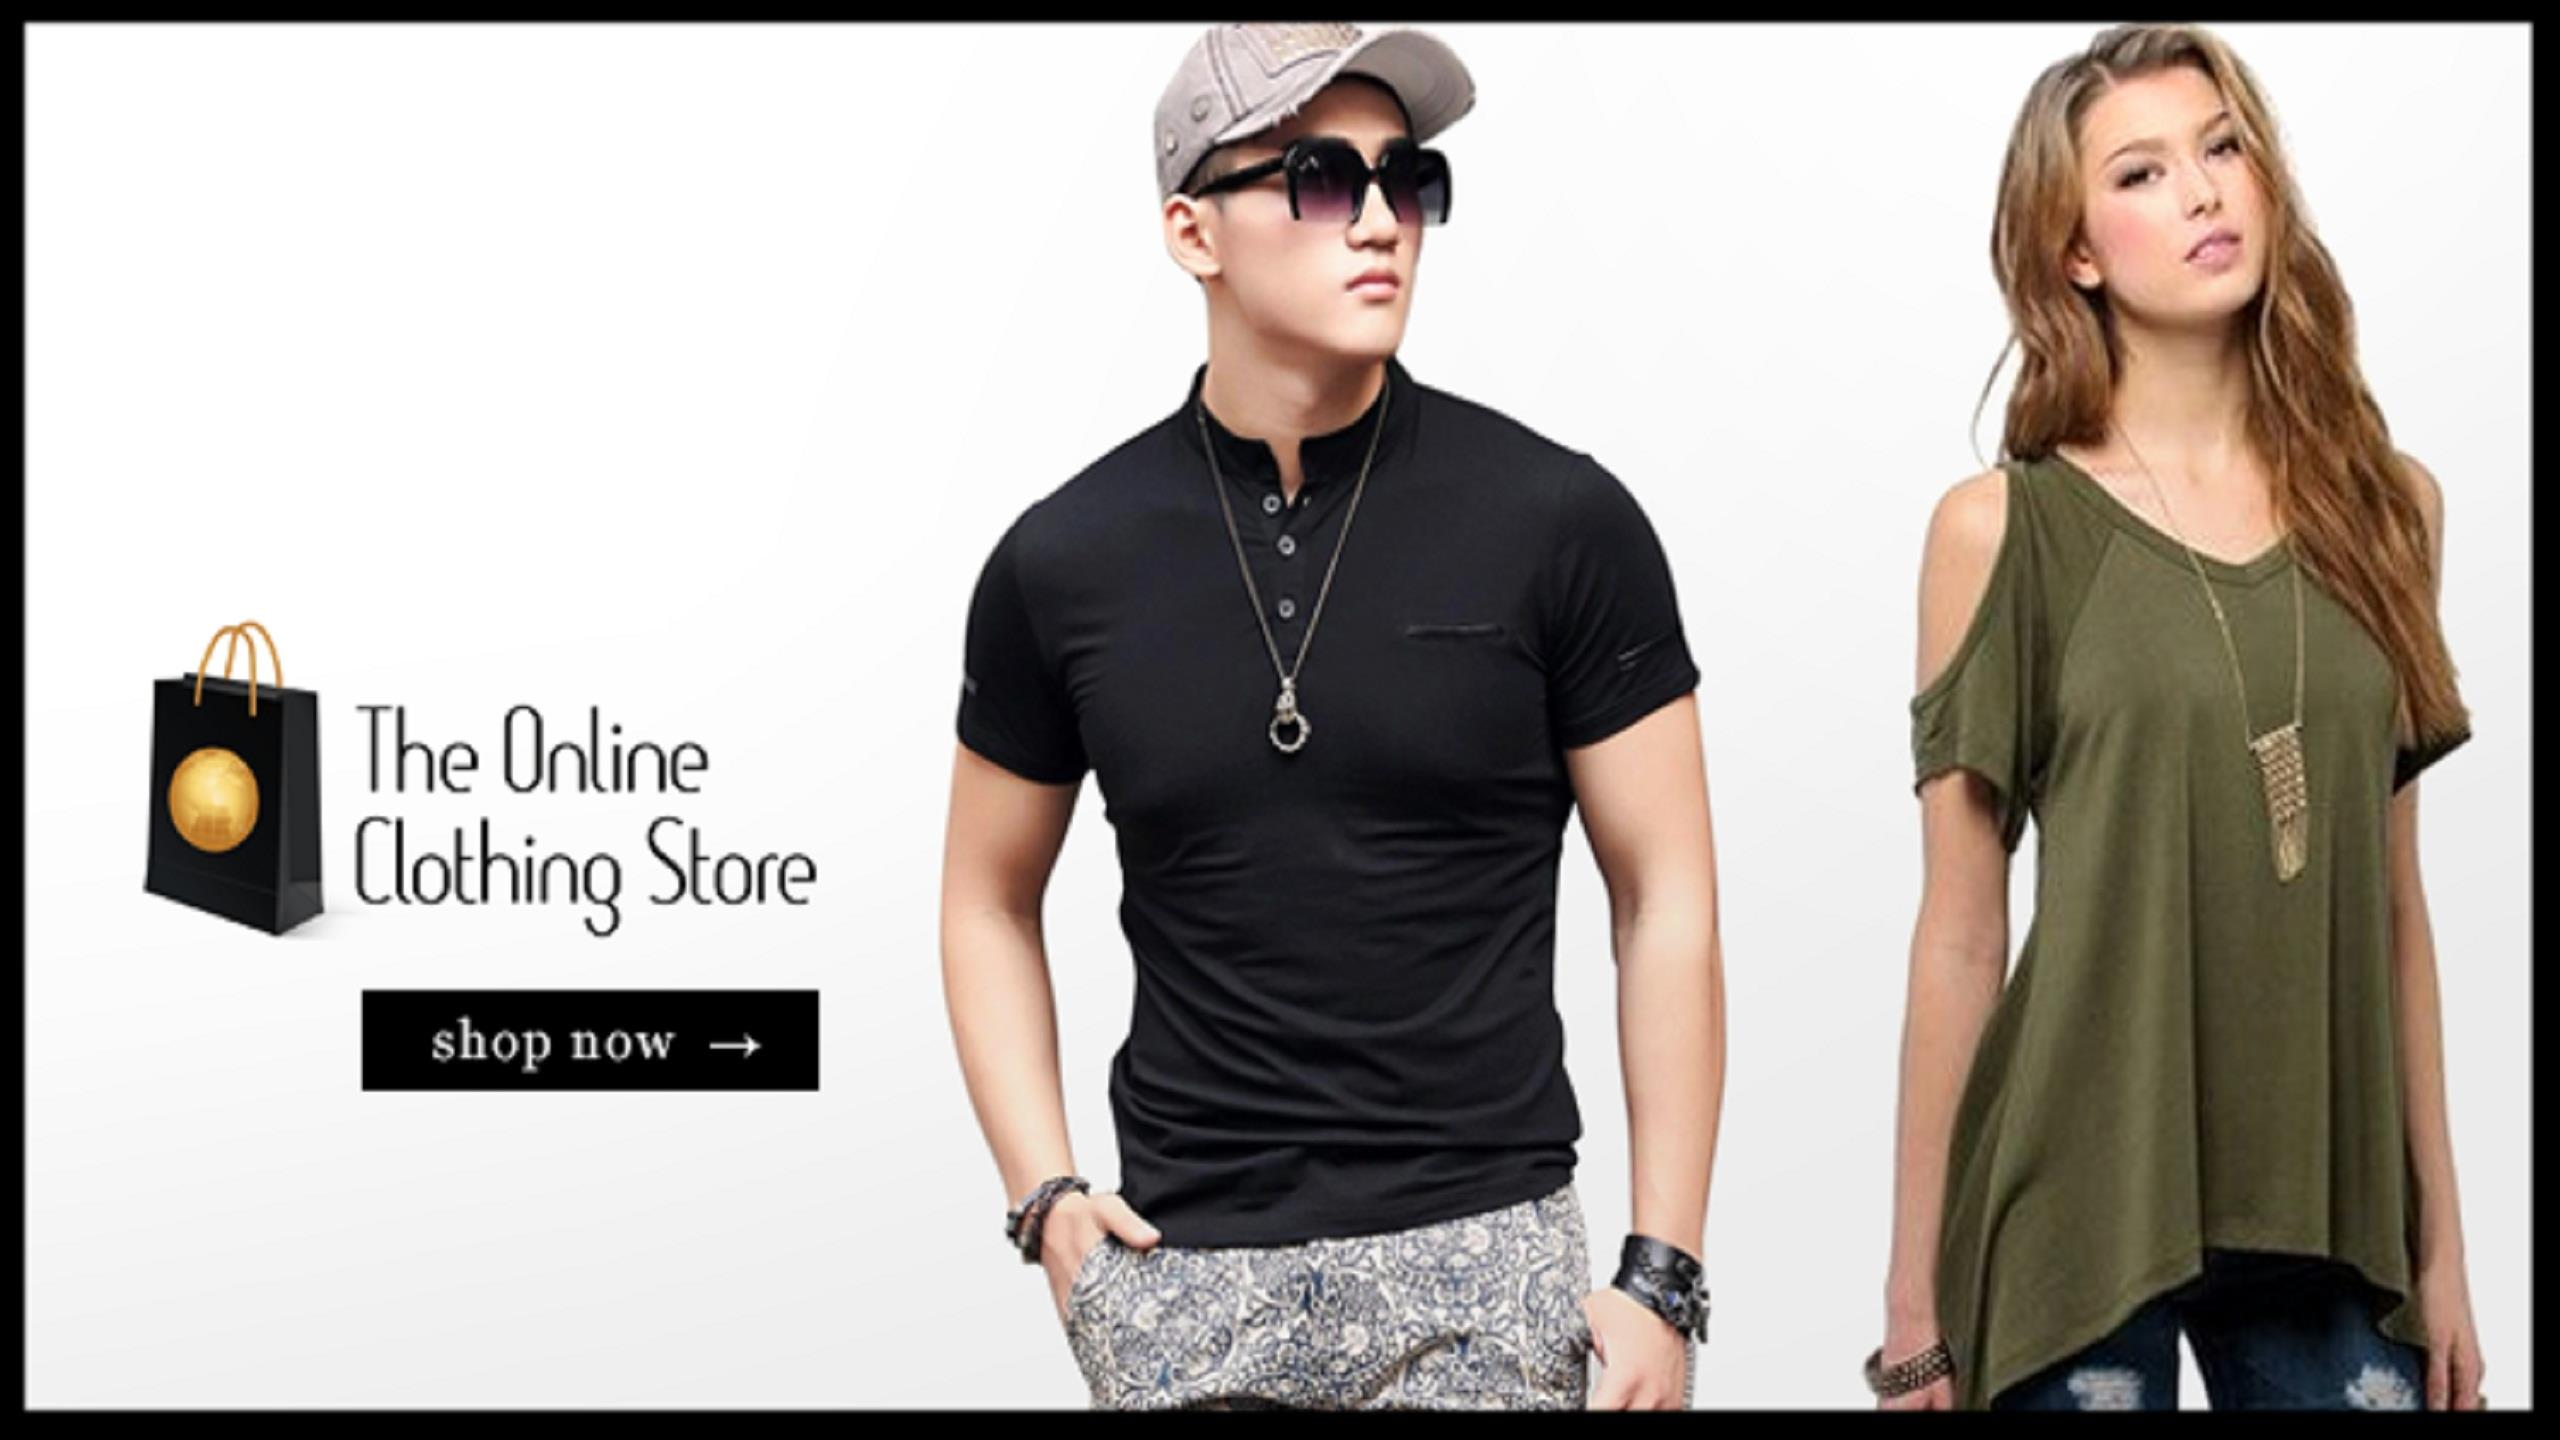 The Online Clothing Store in East Perth f1756e653ddd